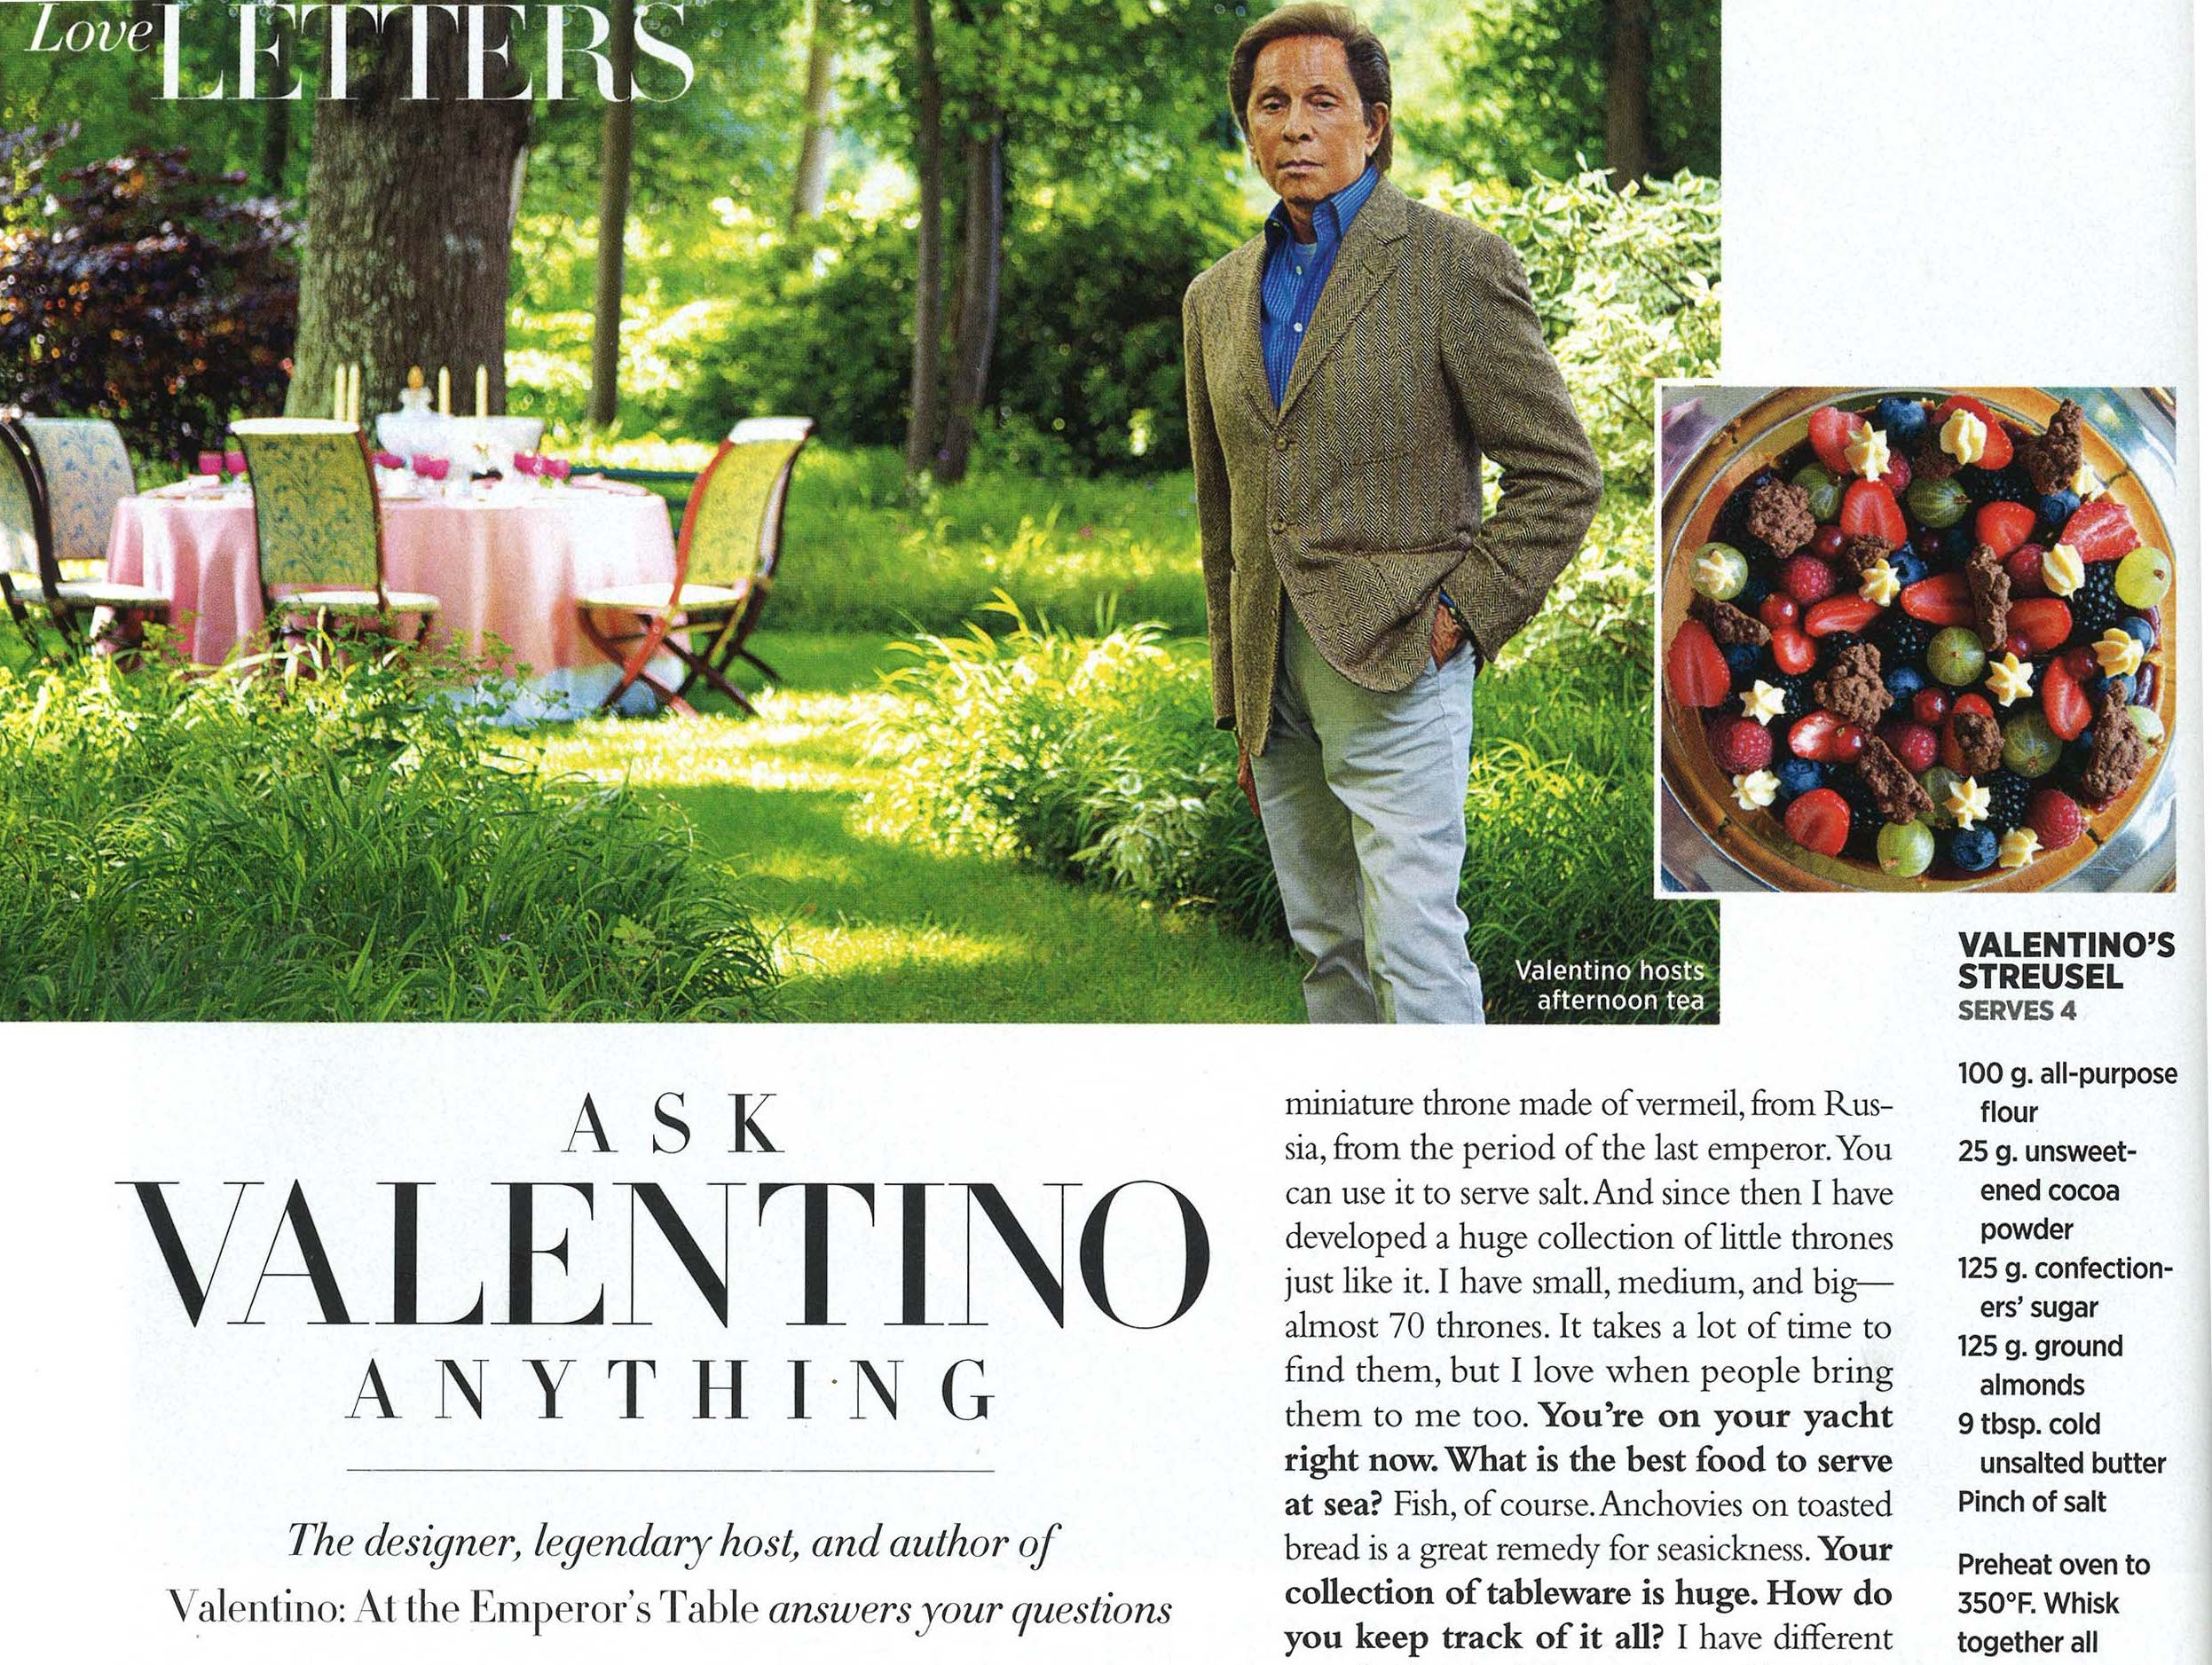 Harper's Bazaar November - Ask Valentino Anything